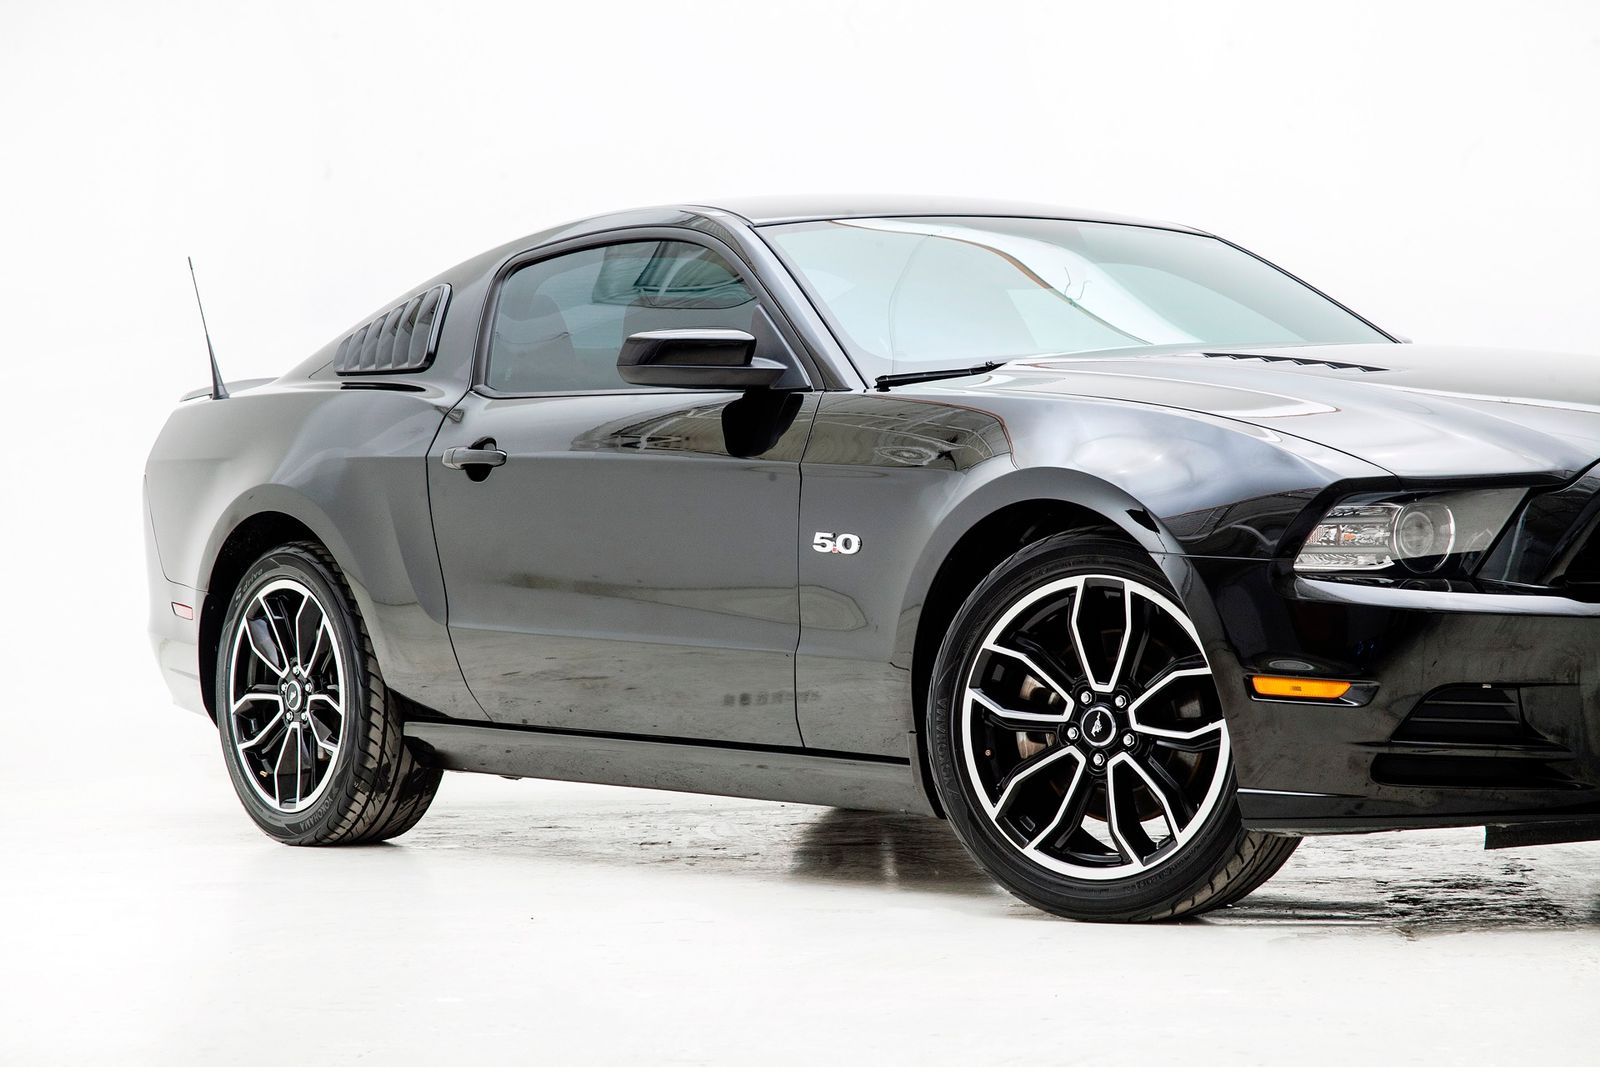 Used 2013 Black Ford Mustang  GT Premium Photo 3